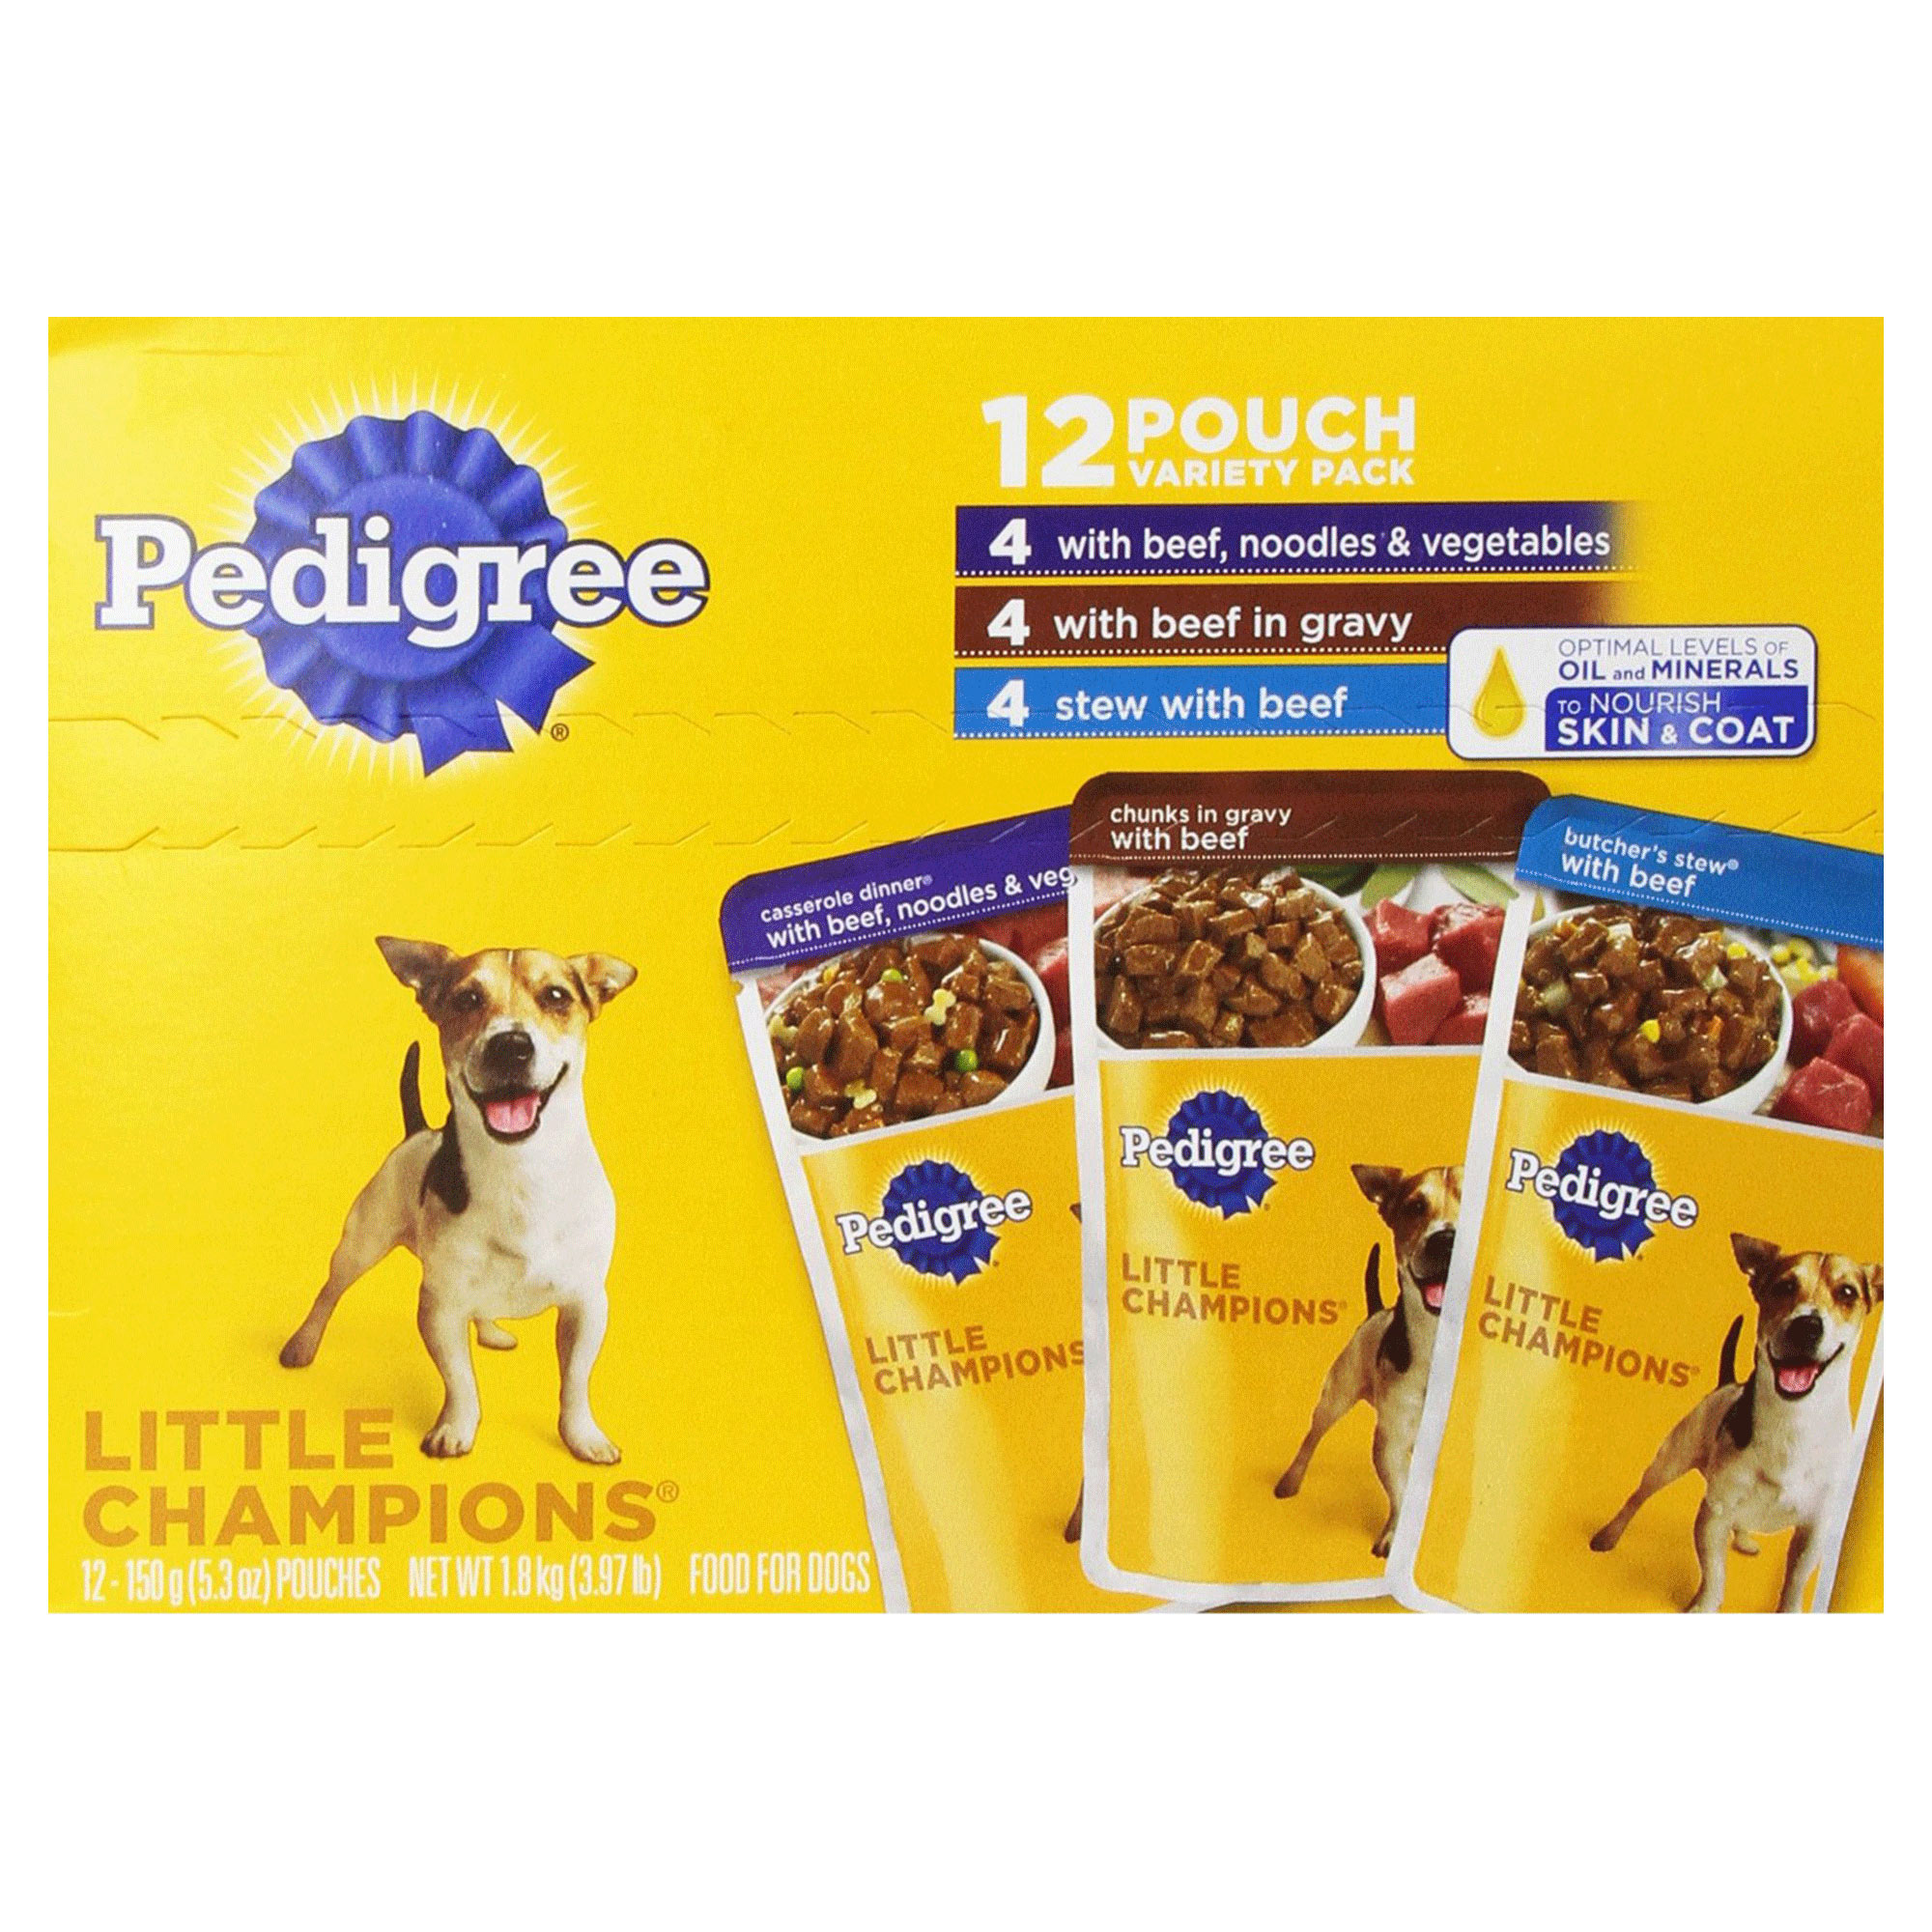 PEDIGREE LITTLE CHAMPIONS Beef Variety Pack Wet Dog Food 5.3 Ounces (Pack of 12)